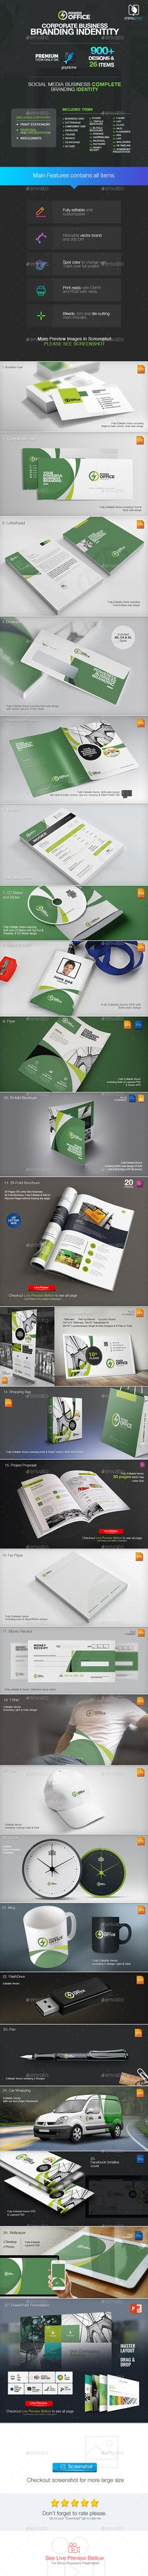 Corporate Business Branding Identity Template PSD, Vector EPS, InDesign INDD